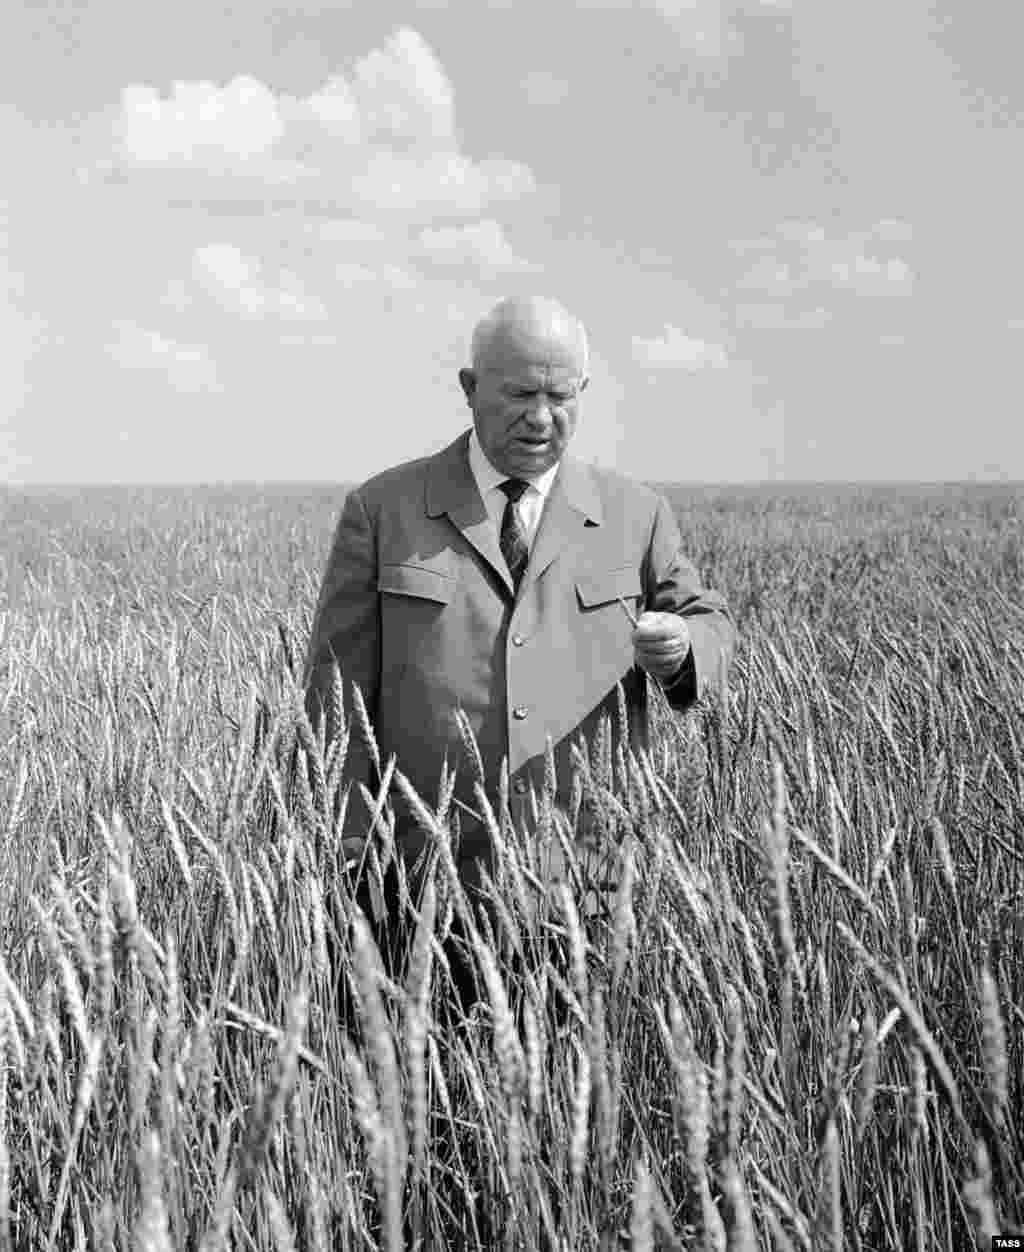 In the mid-1950s, Khrushchev launched his Virgin Lands campaign to encourage farming on previously uncultivated land in the Soviet Republic of Kazakhstan. In this picture from 1964, he poses in a Kazakh field.